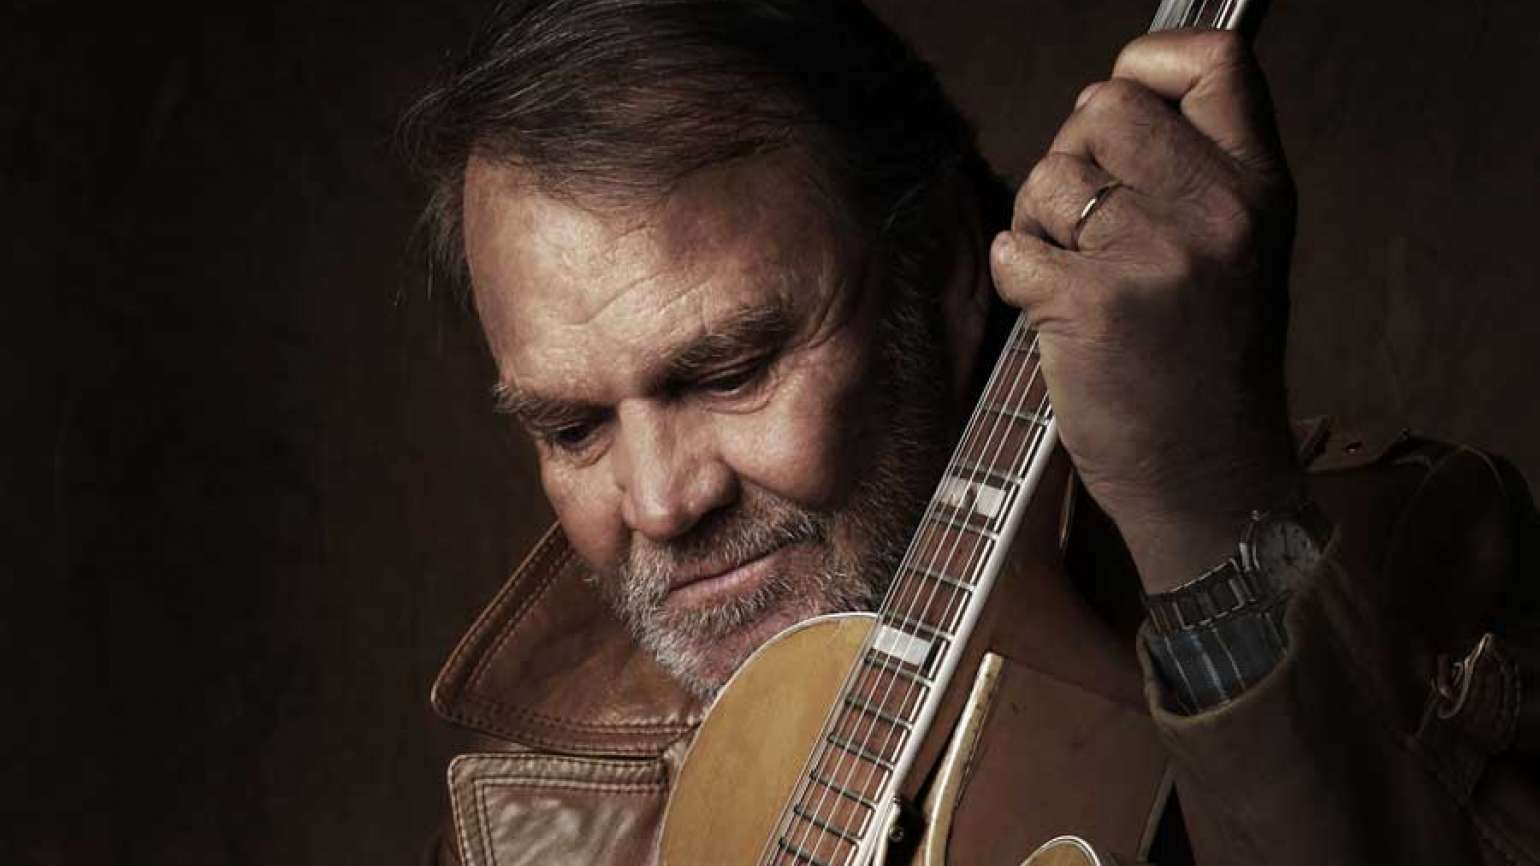 Glen Campbell holding a guitar